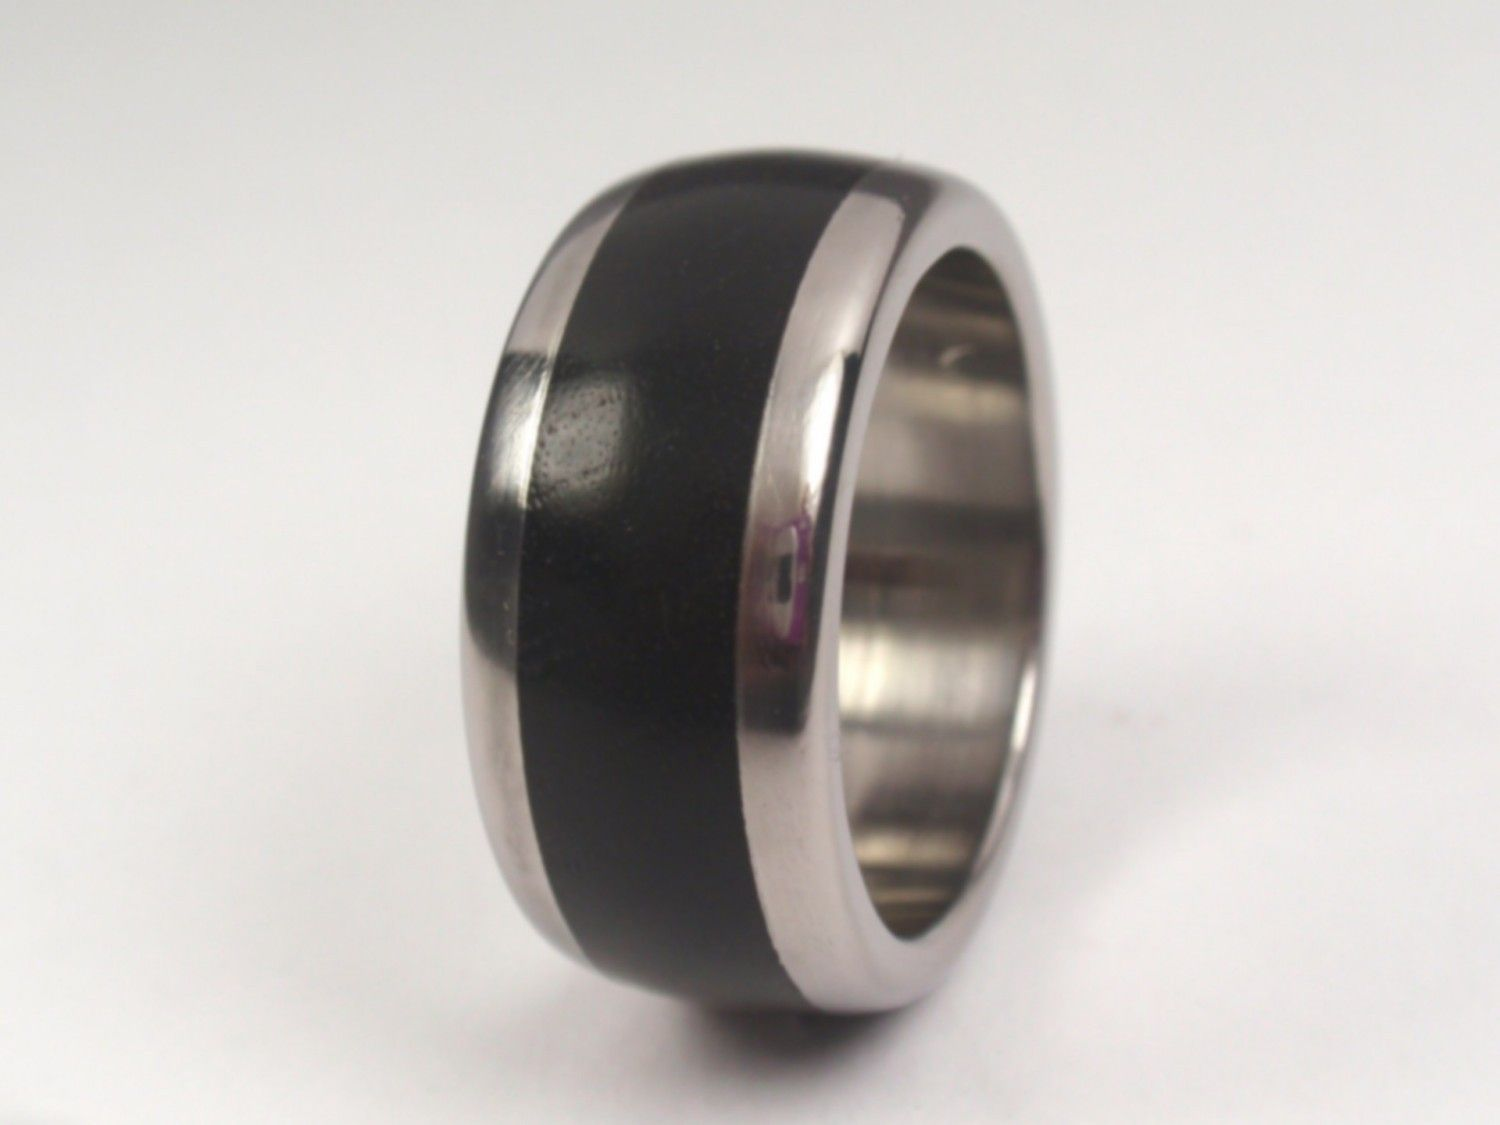 Titanium Ring With African Black Wood Inlay Wooden Wedding Band 16600 Via Etsy: African Wood Wedding Rings At Reisefeber.org